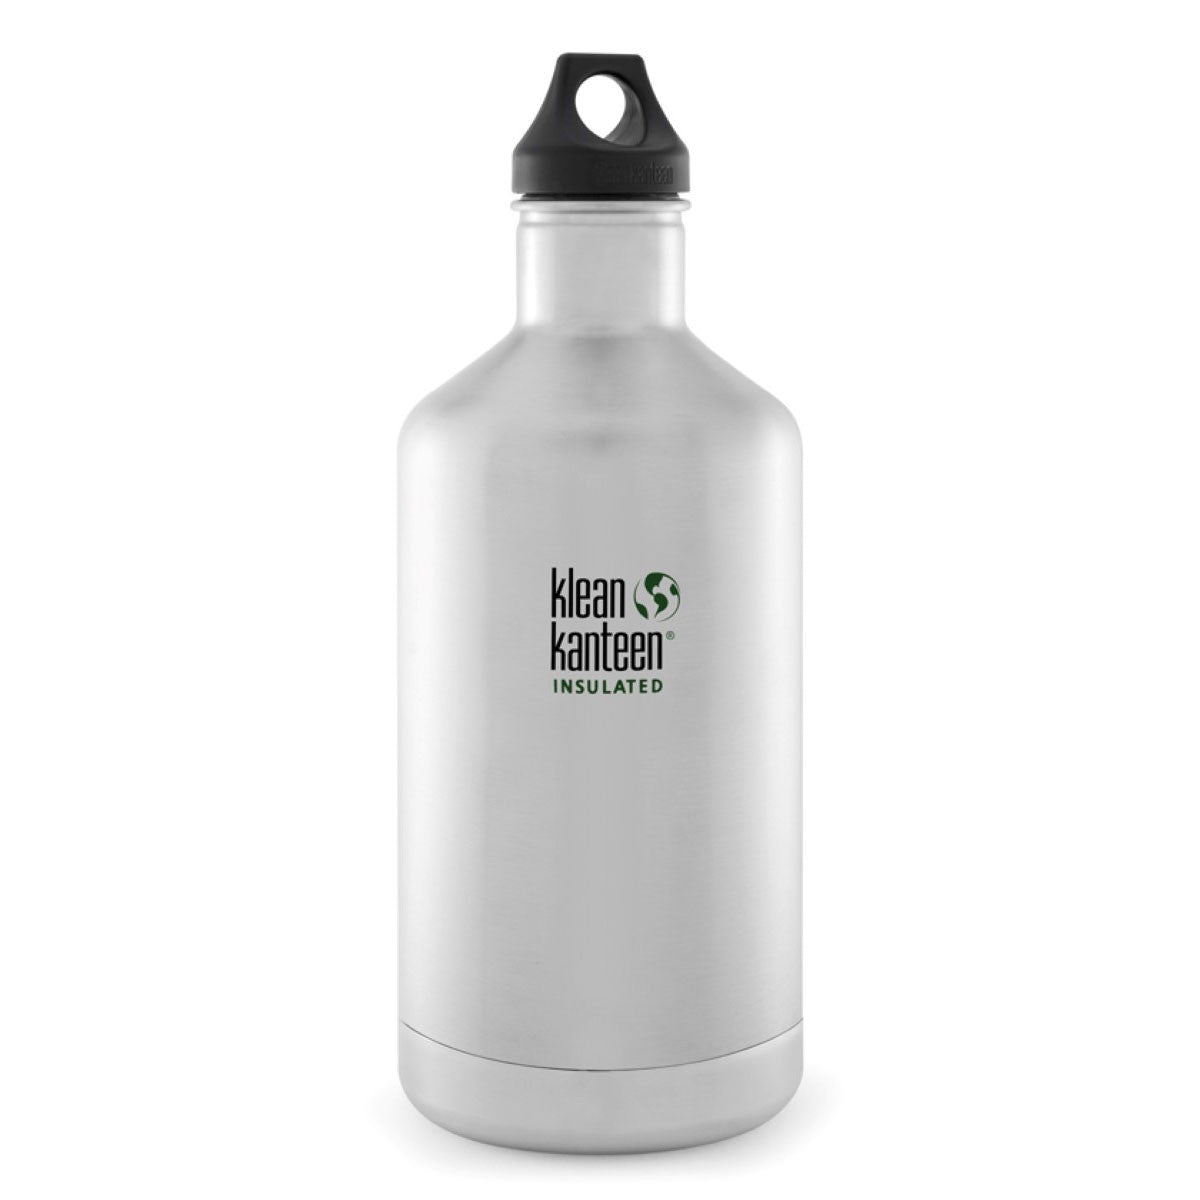 Klean Kanteen Stainless Steel Insulated Classic Water Bottle  1900ml 64oz / Brushed Stainless - Klean Kanteen - Little Earth Nest - 21